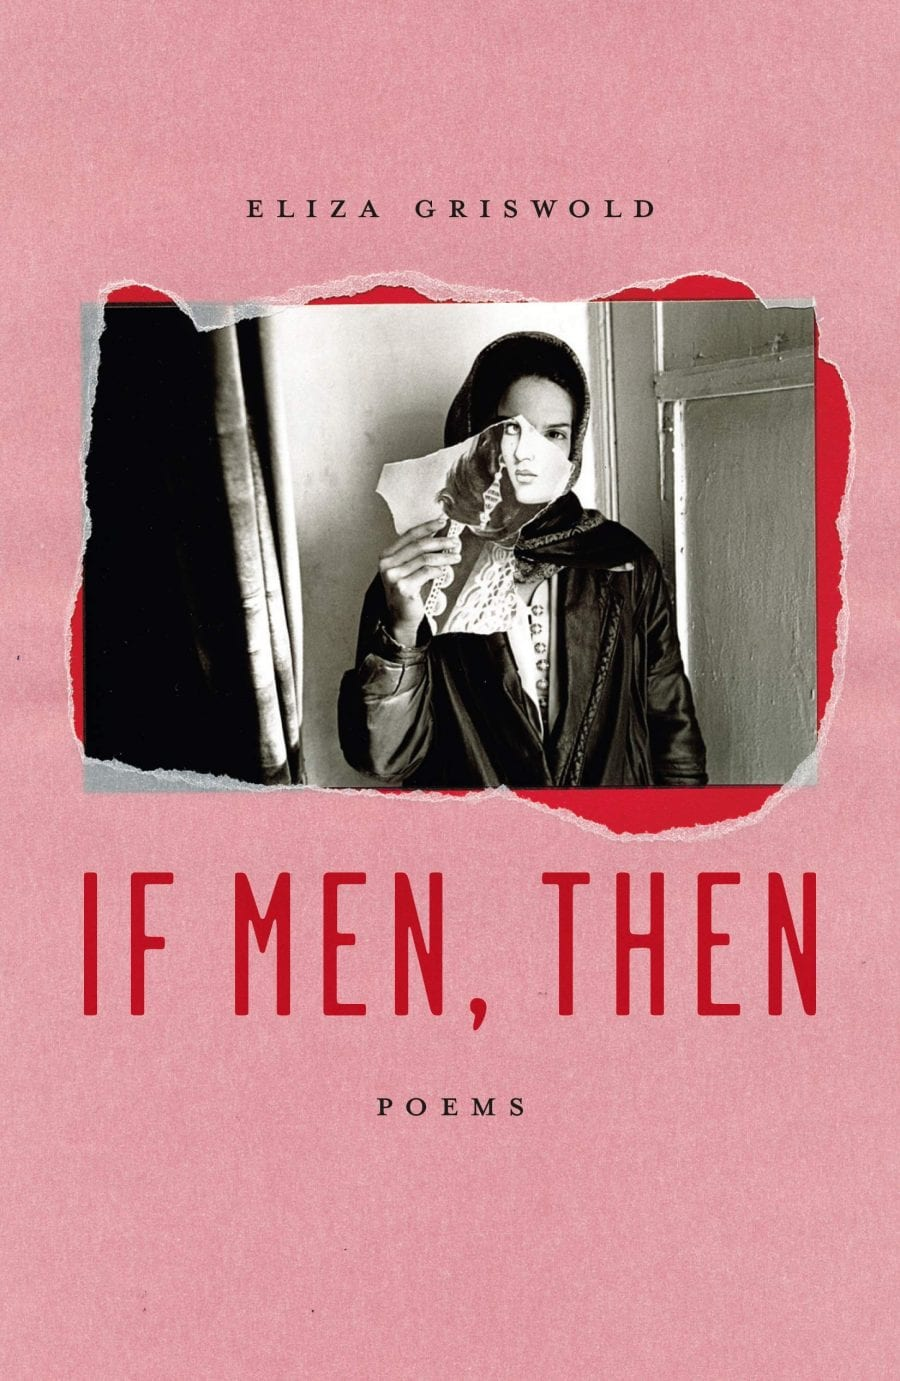 If Men, Then, by Eliza Griswold